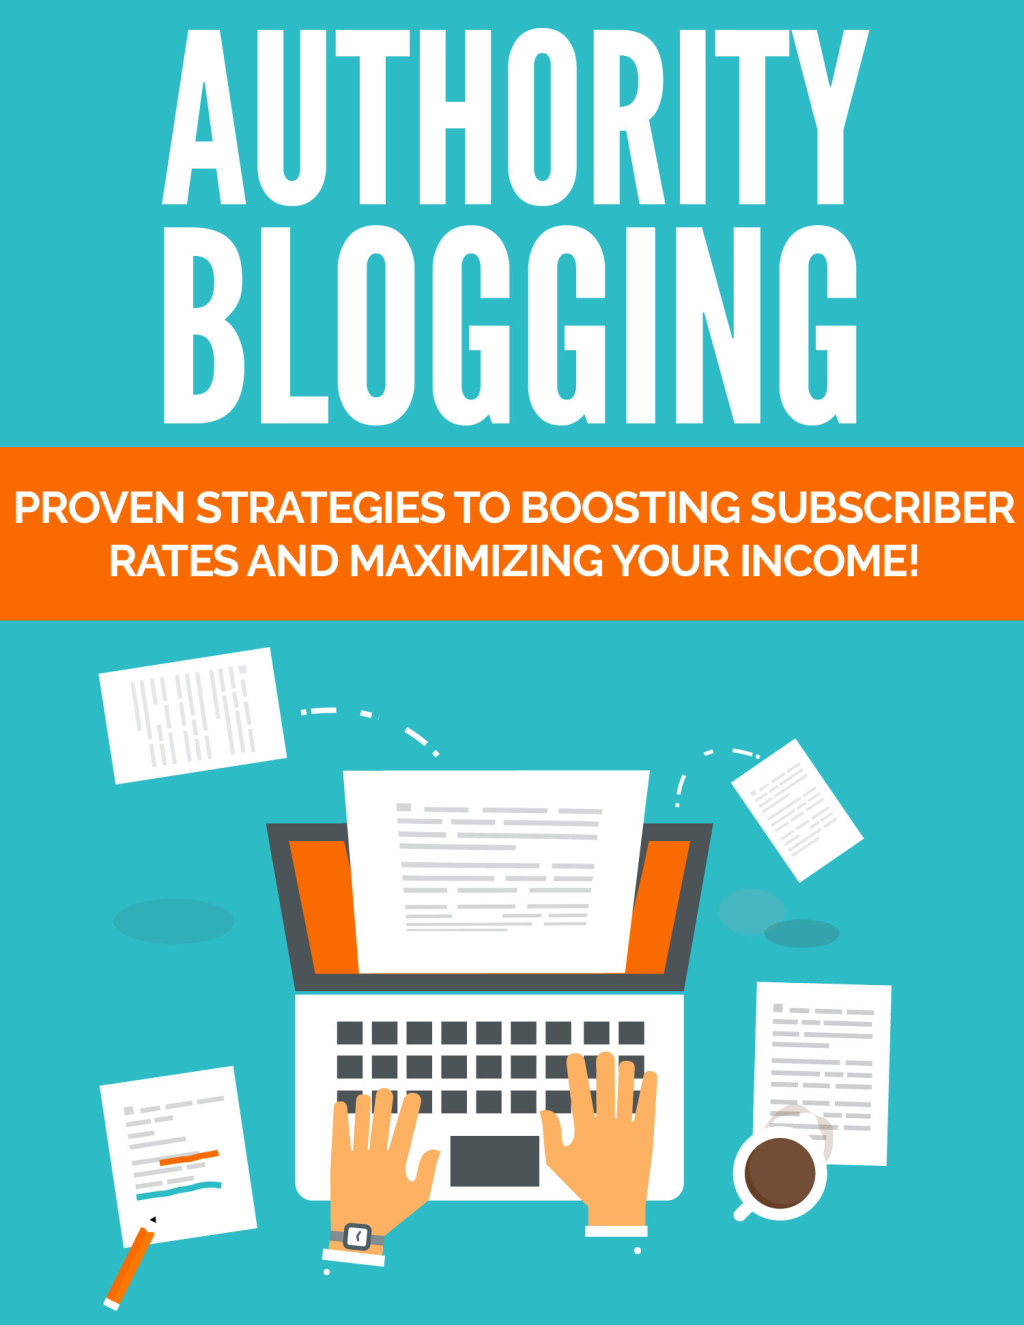 Authority Blogging